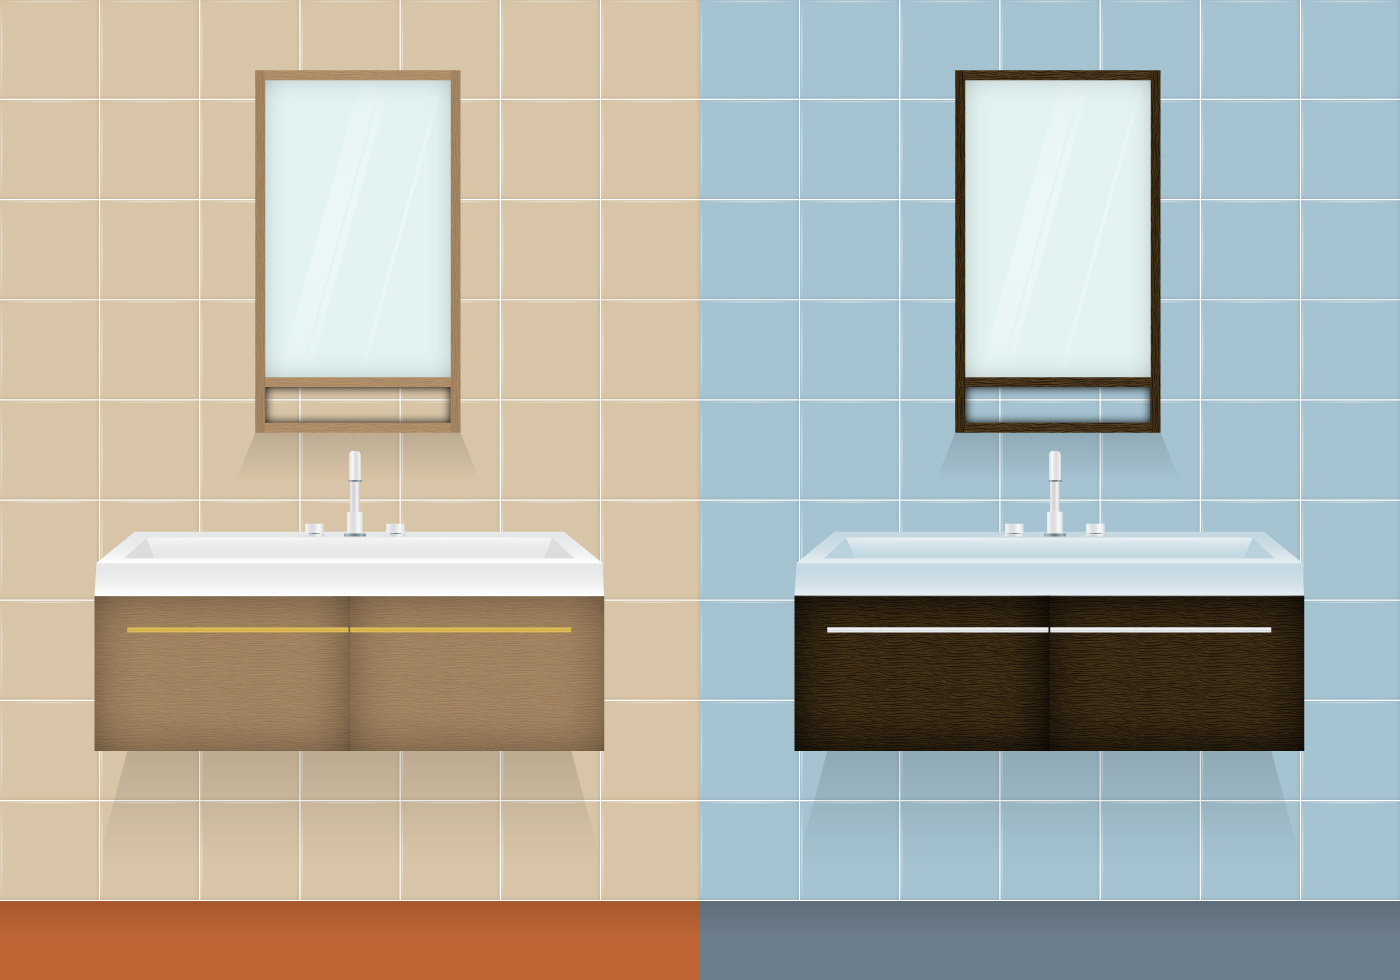 Bathroom Cabinet Vectors - Download Free Vector Art, Stock Graphics ...